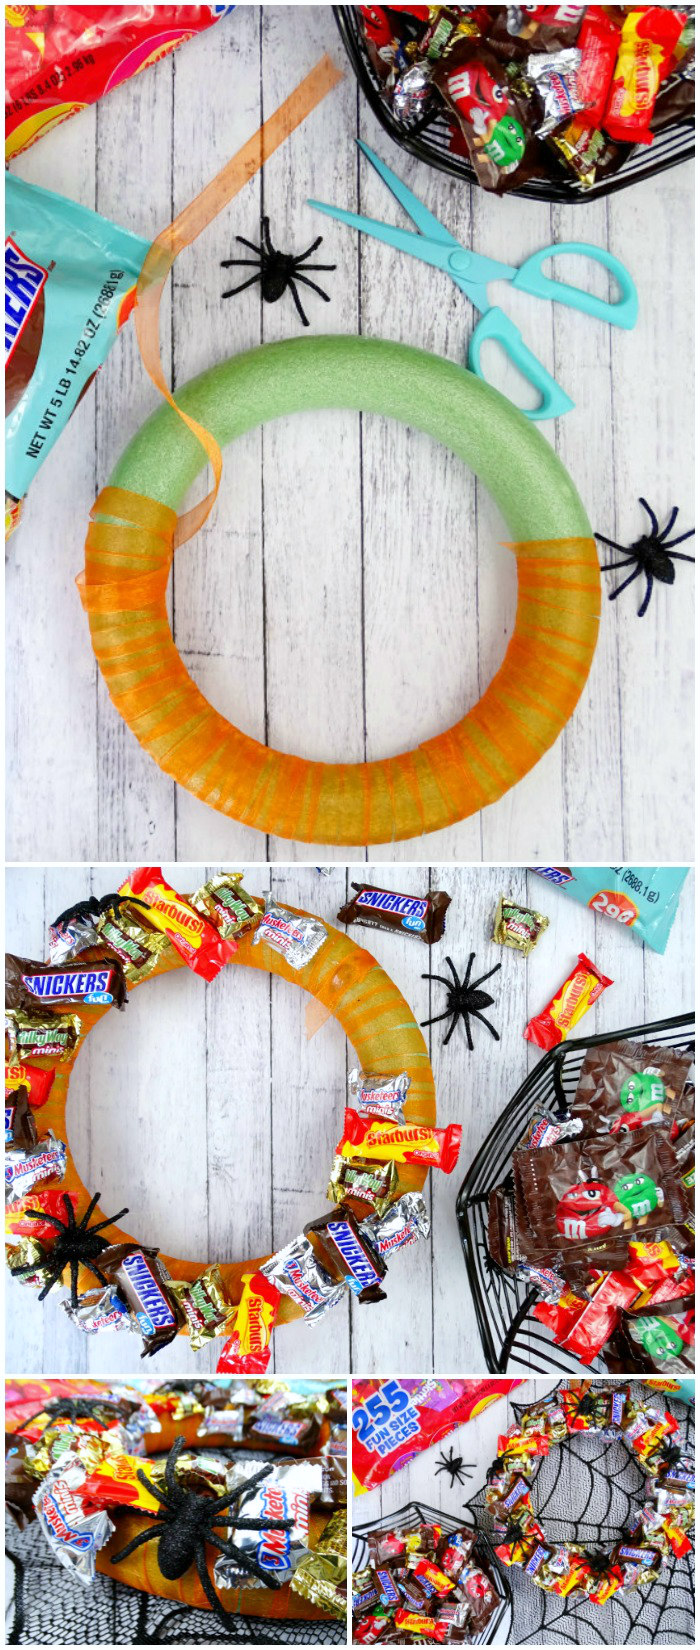 then i decided to use some of our candy to make a diy halloween candy wreath to hang on my neighbors door and made small baskets of candy for our other - Halloween Candy Wreath